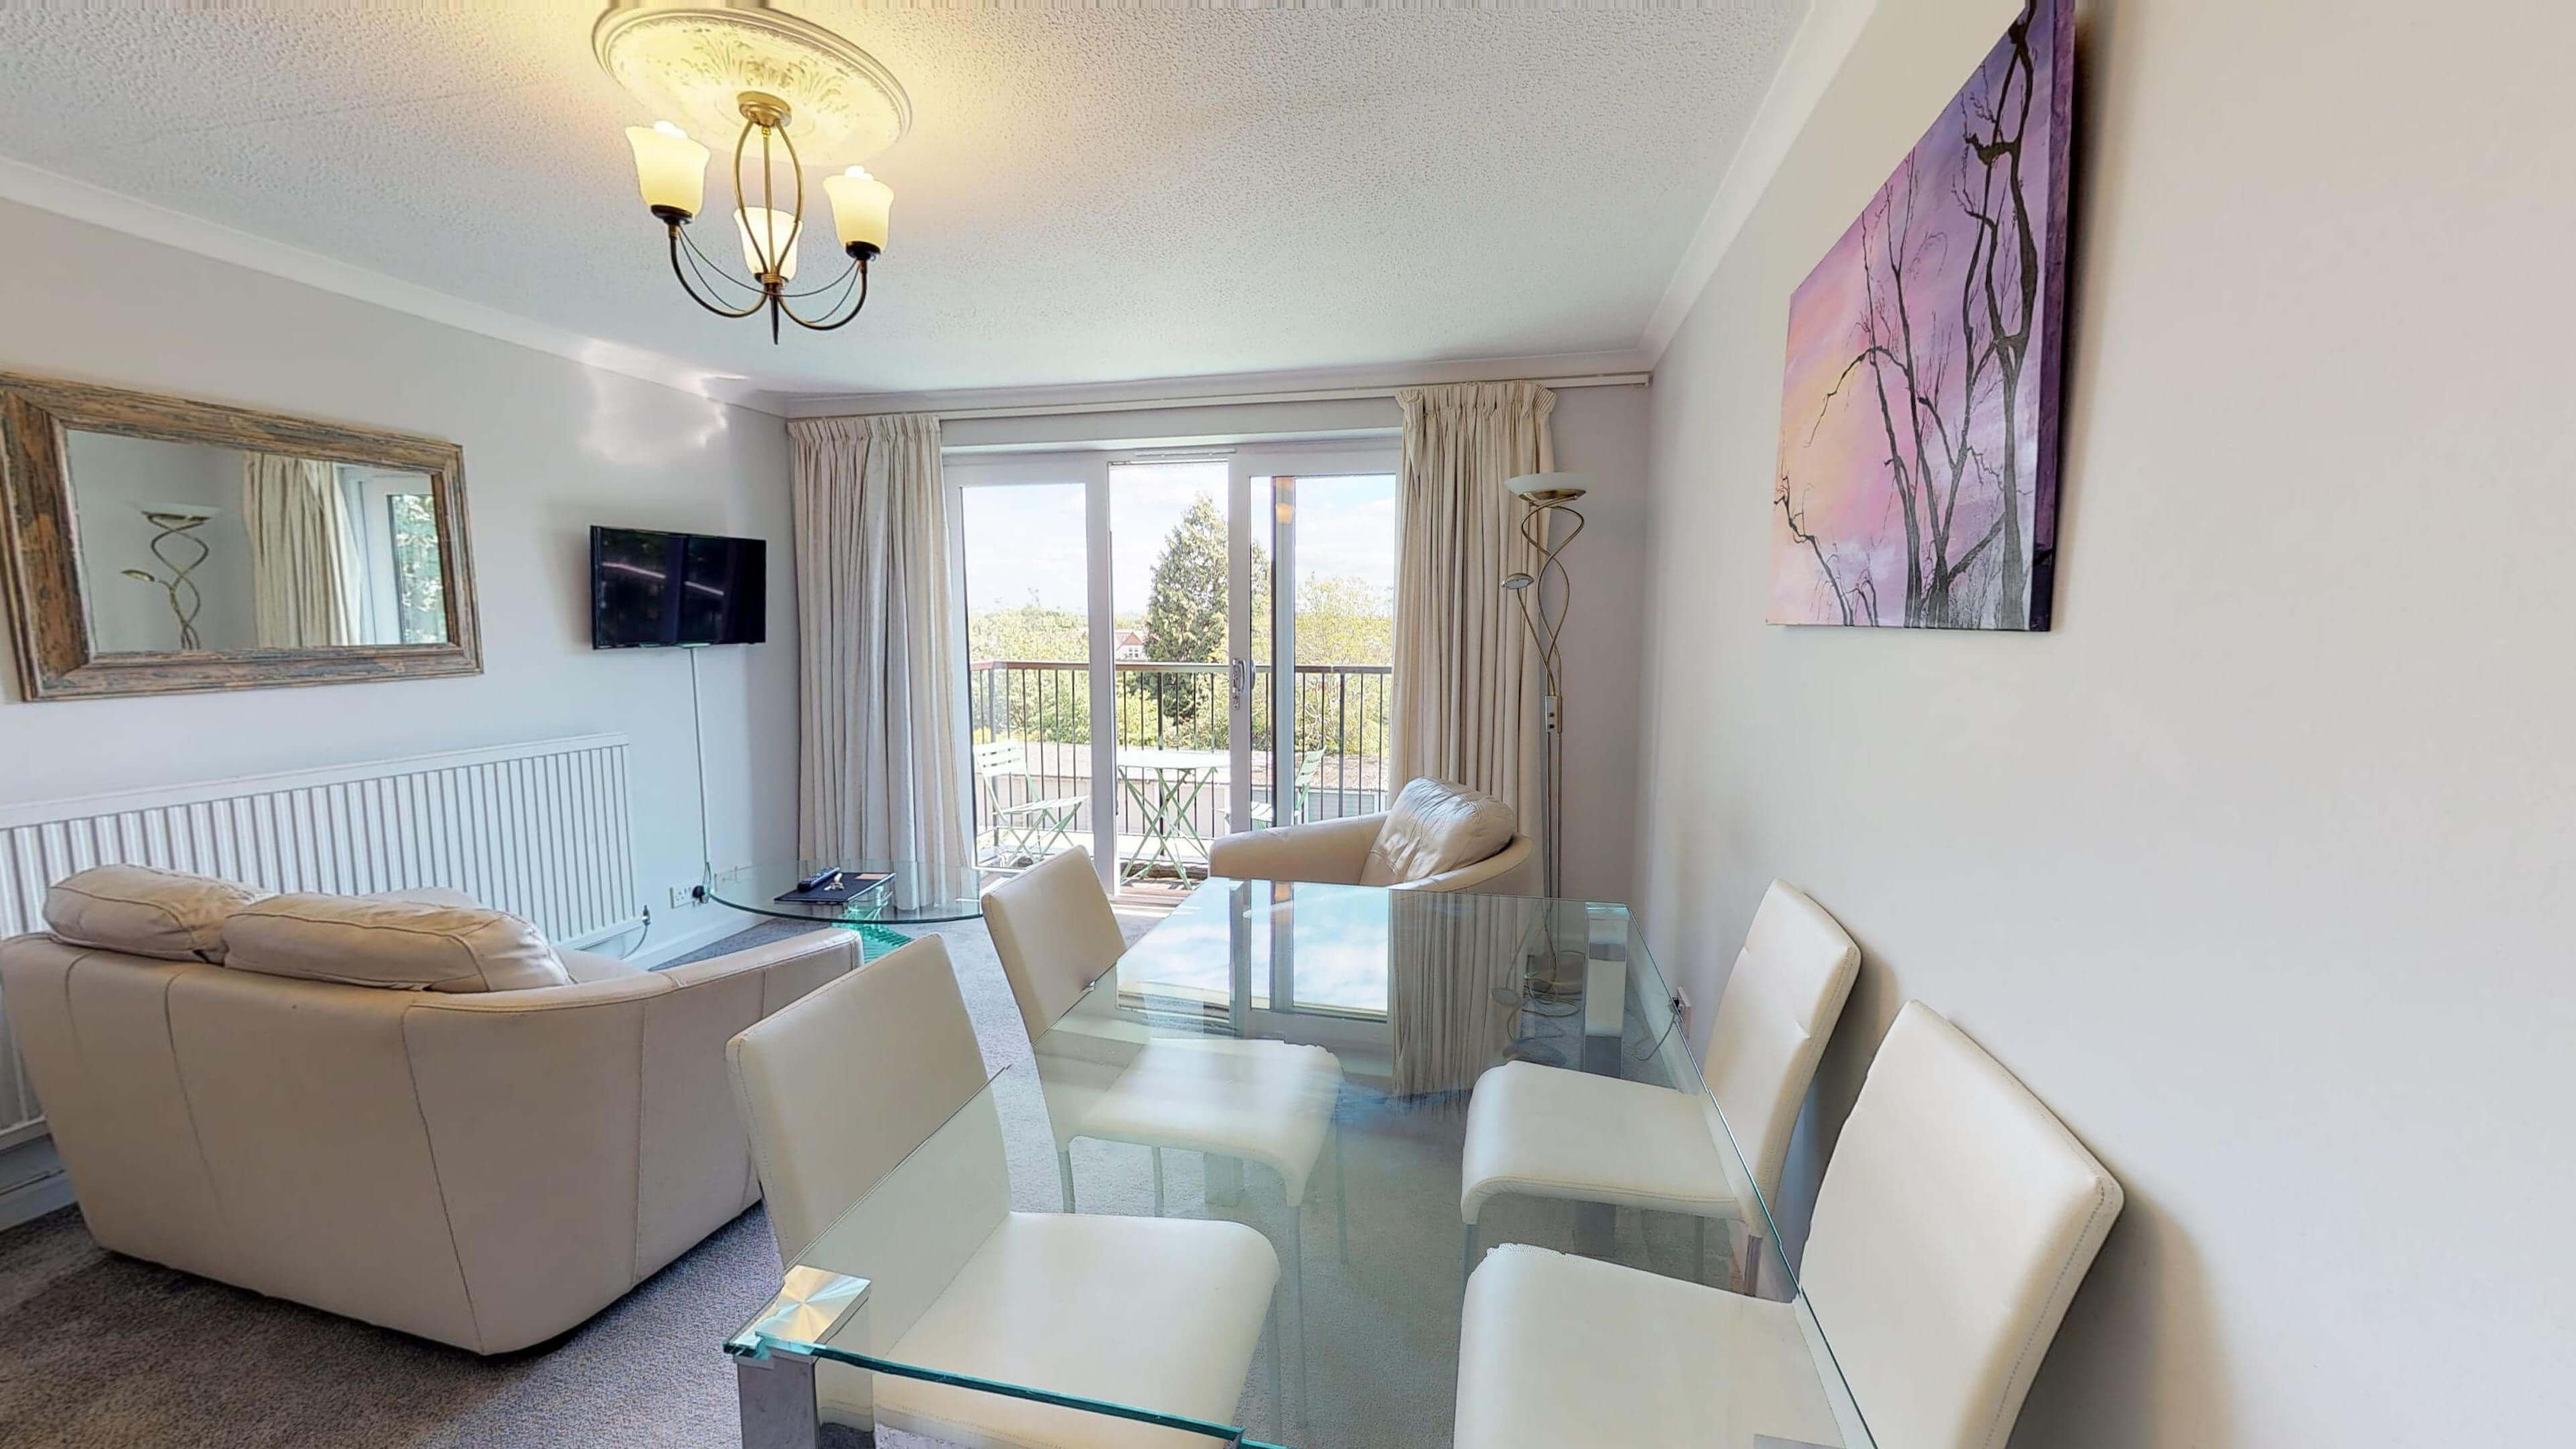 Short Stay Oxford The Firs Apartment 05232019 063635